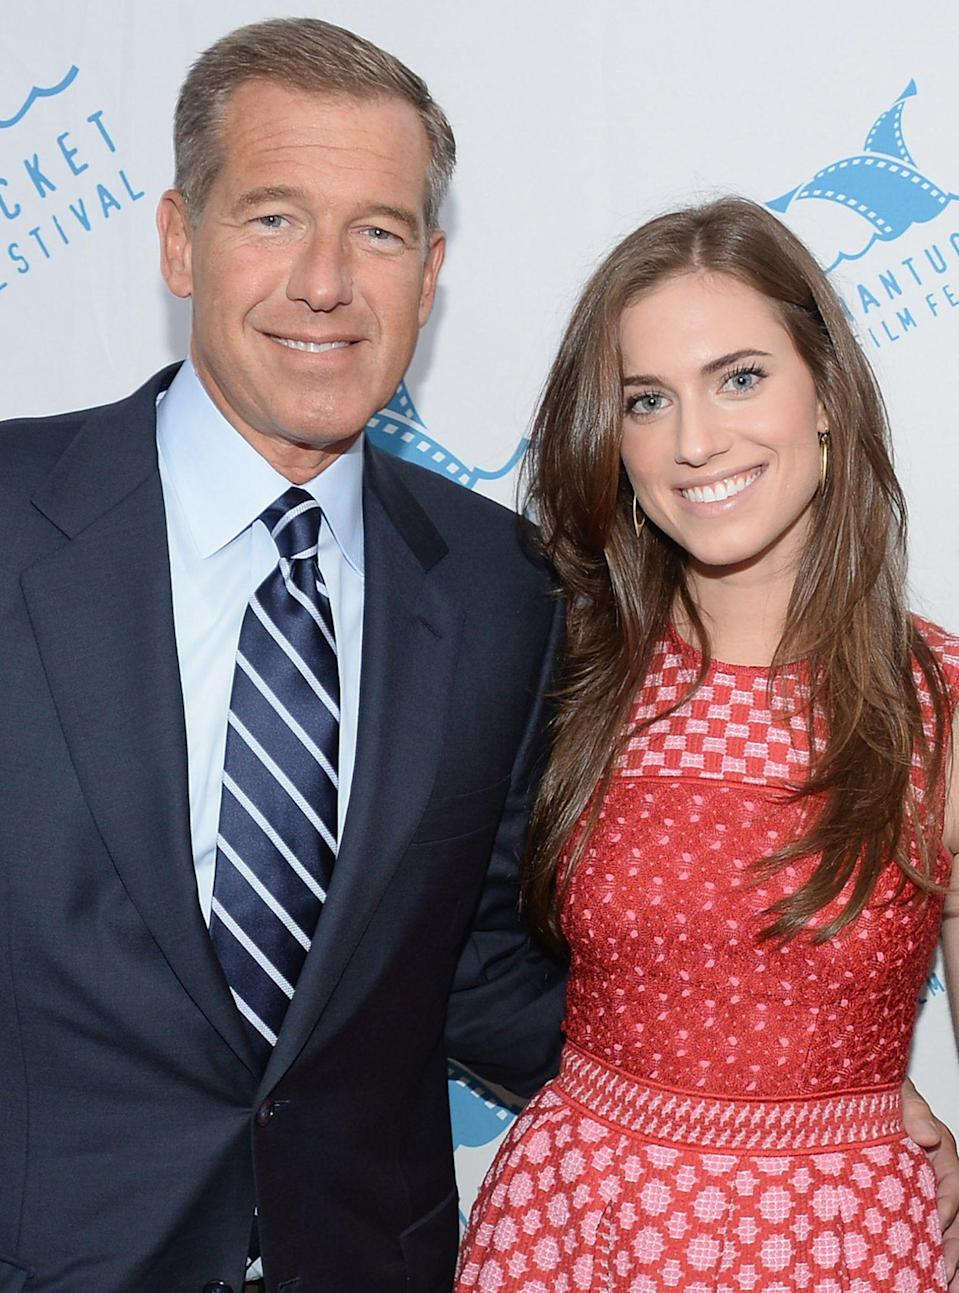 <p>Dad and daughter both work in front of the camera - just different jobs. The <em>Girls </em>star is the daughter of the longtime national news anchor.</p>